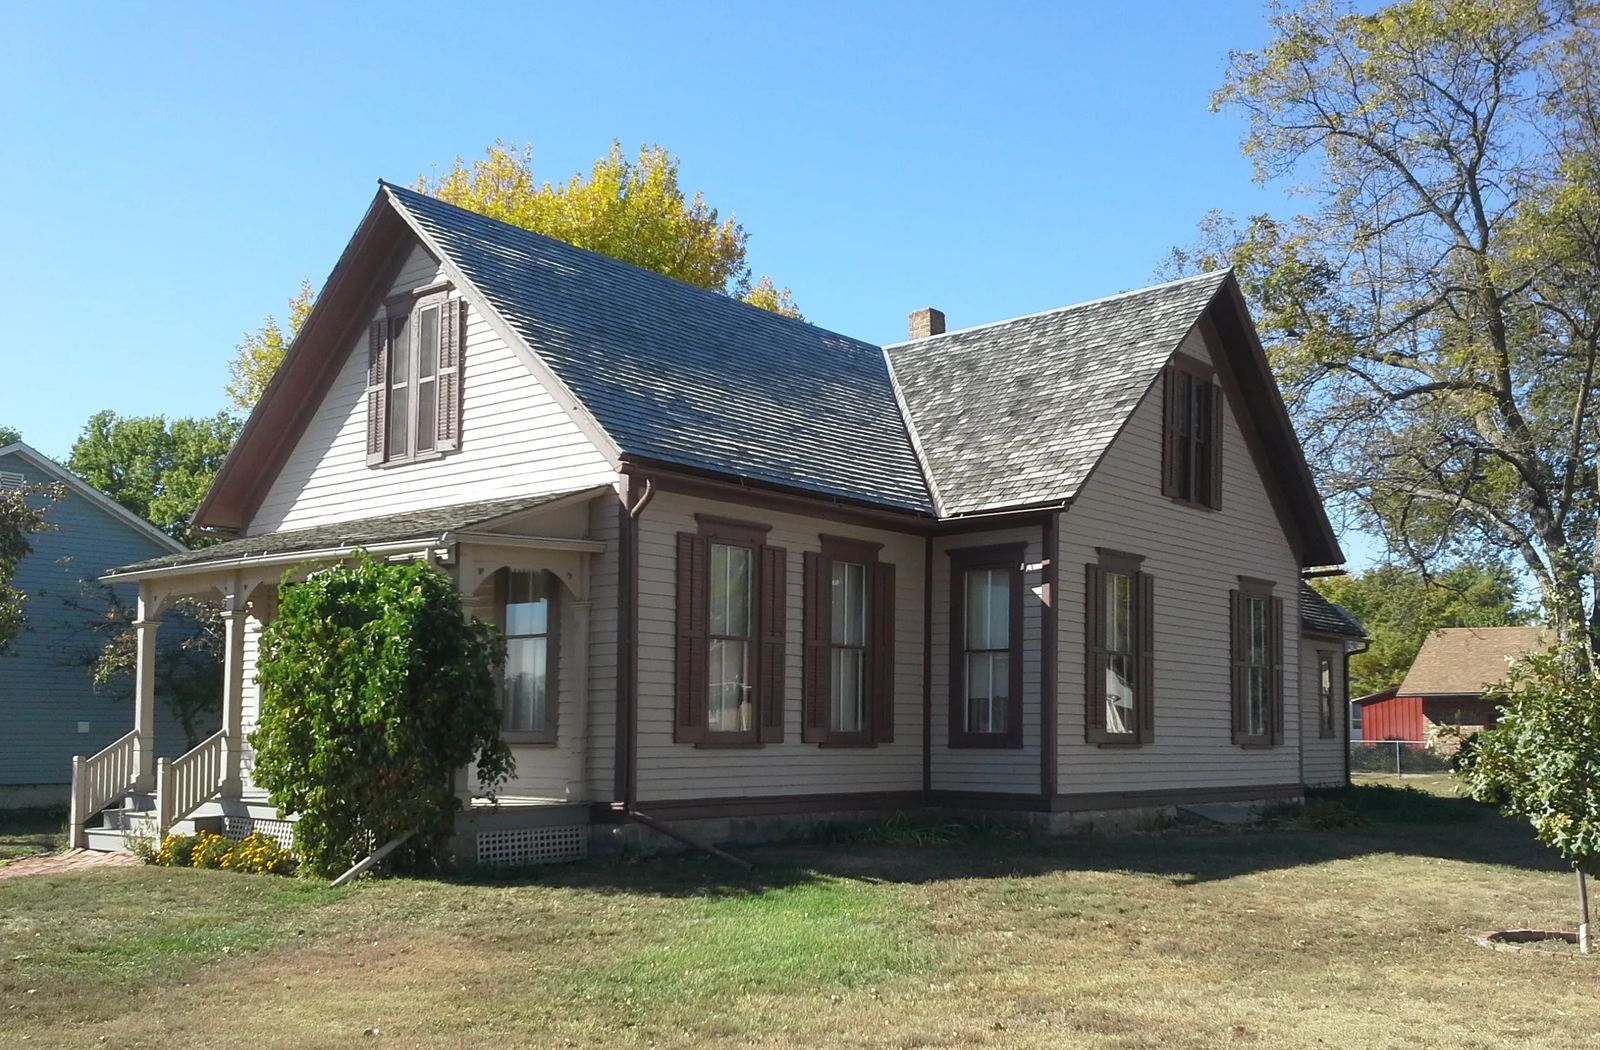 Photo of Willa Cather Home in Red Cloud, Nebraska